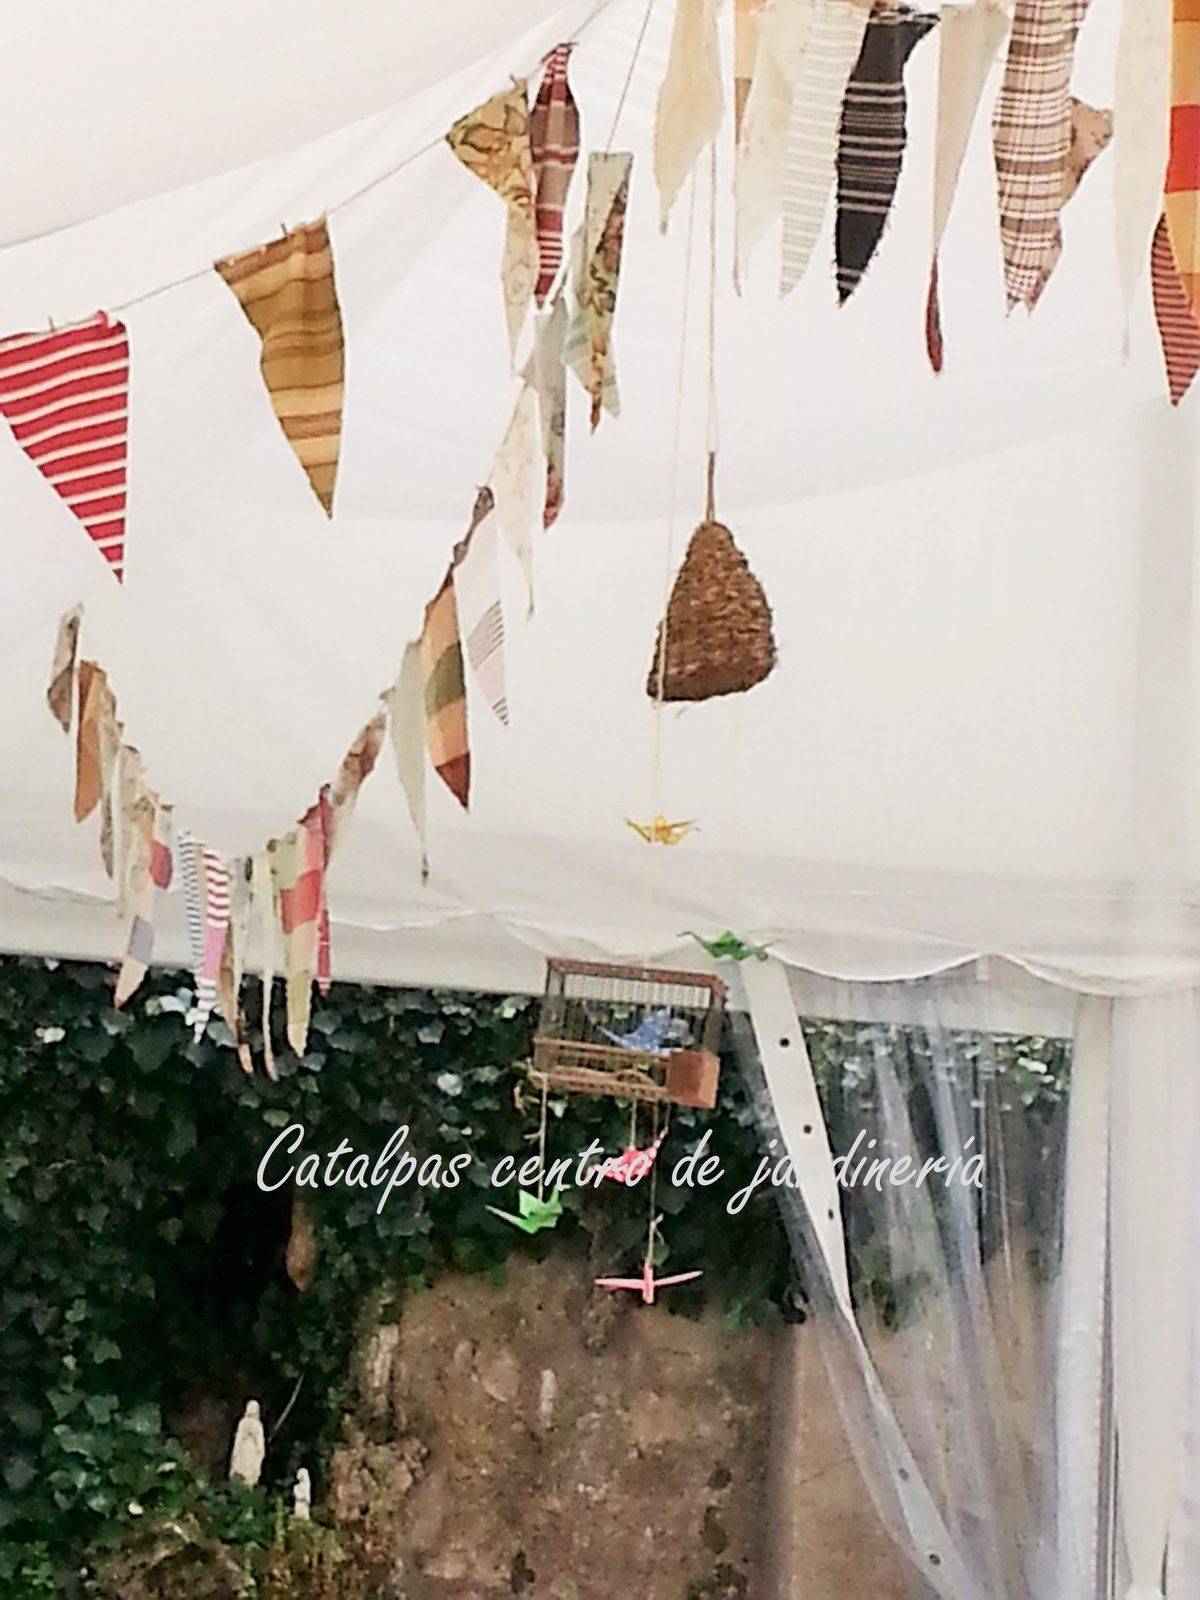 Detalles carpa - catalpas